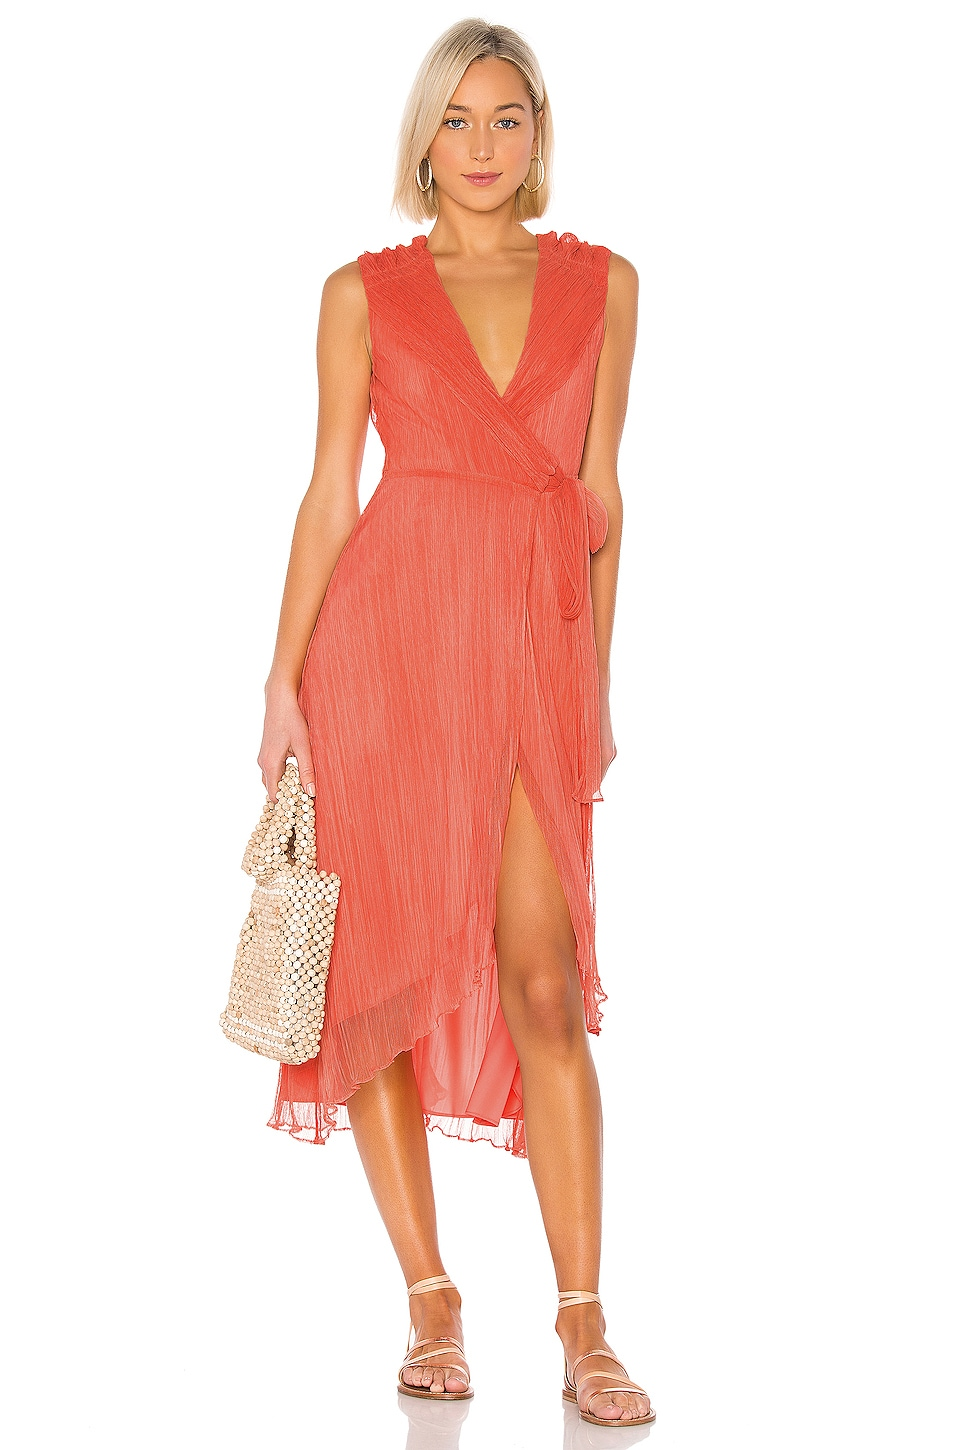 House of Harlow 1960 X REVOLVE Meriem Dress in Coral